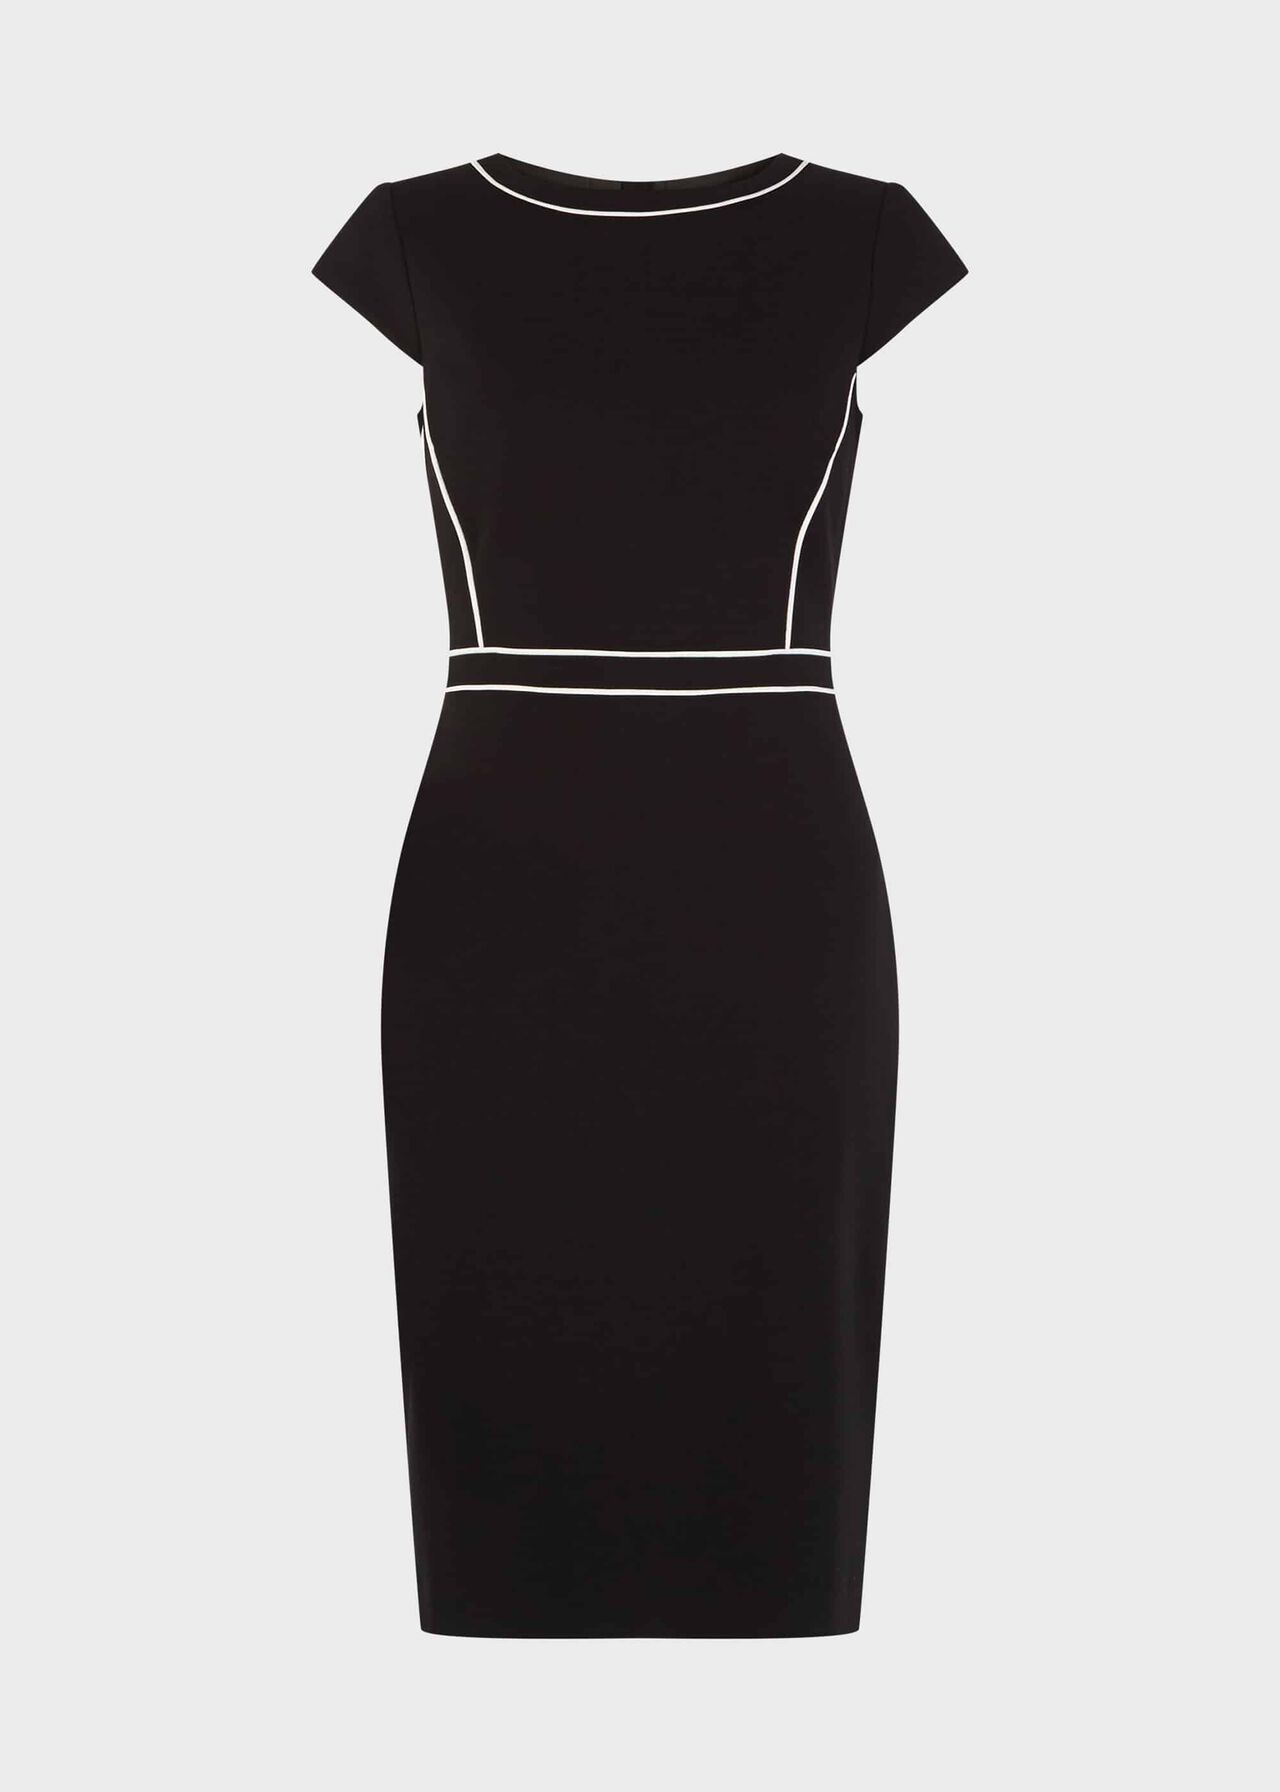 Petite Cordelia Dress Black Ivory